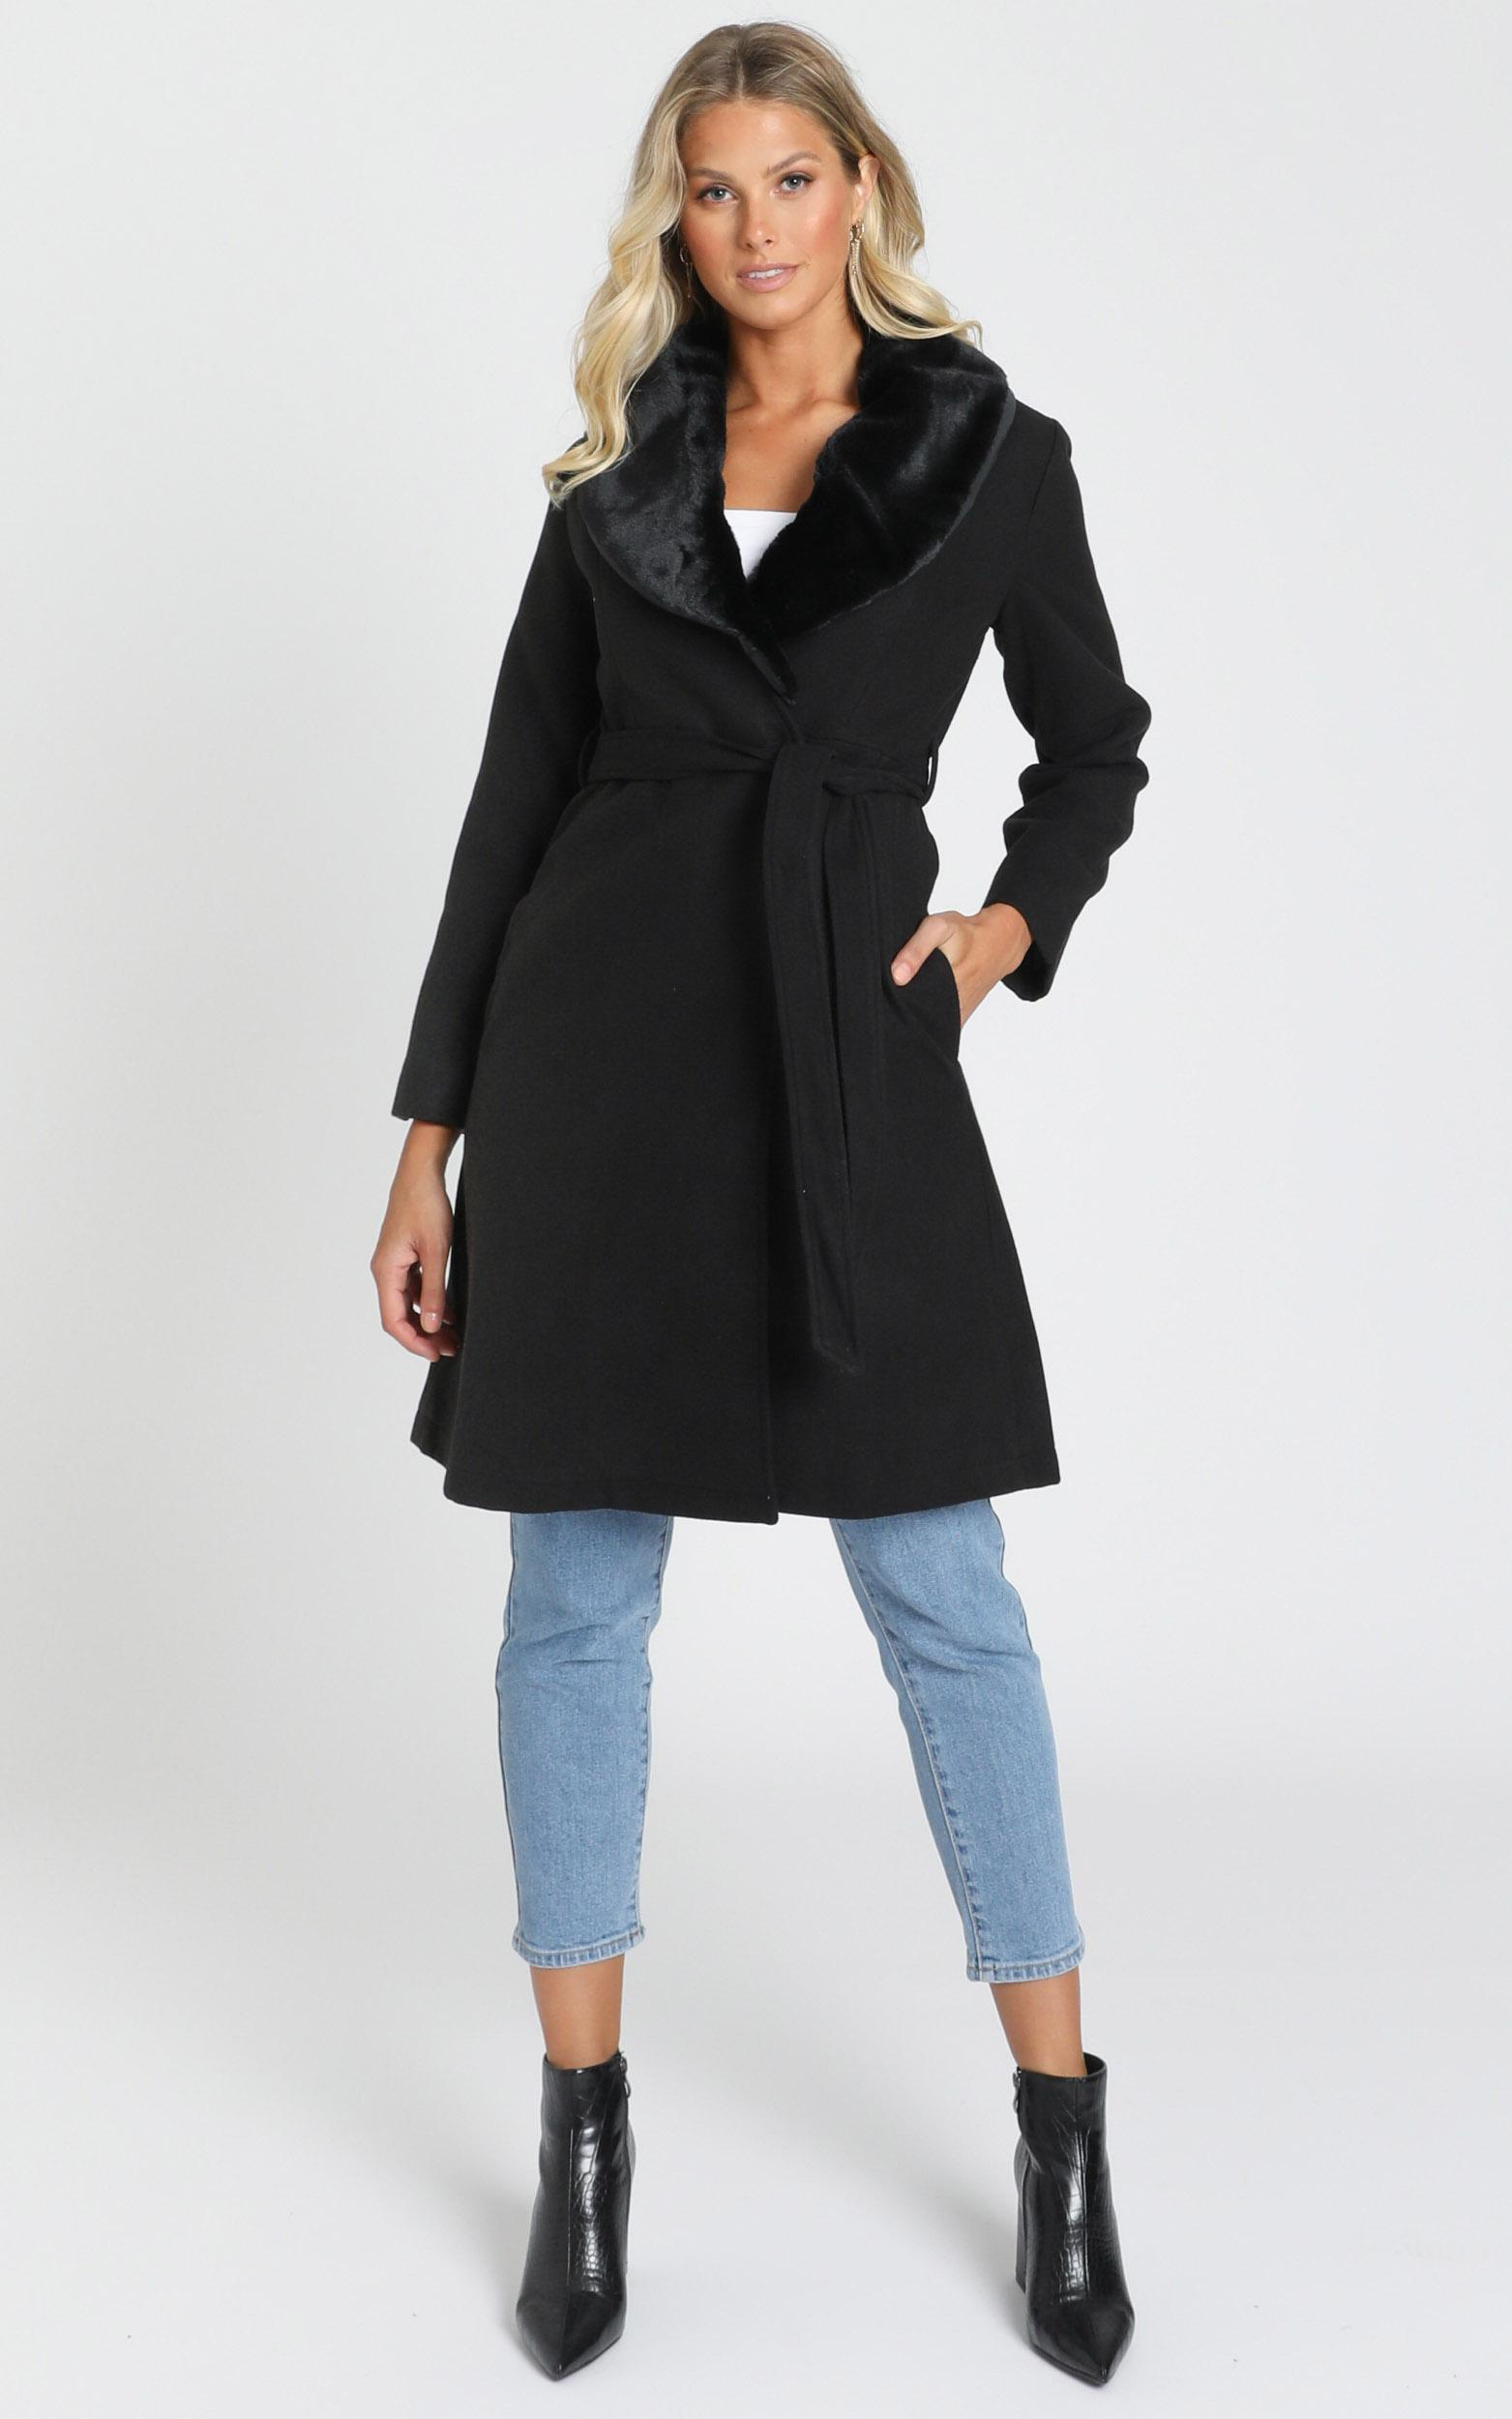 Showstopper Coat in black - 20 (XXXXL), Black, hi-res image number null